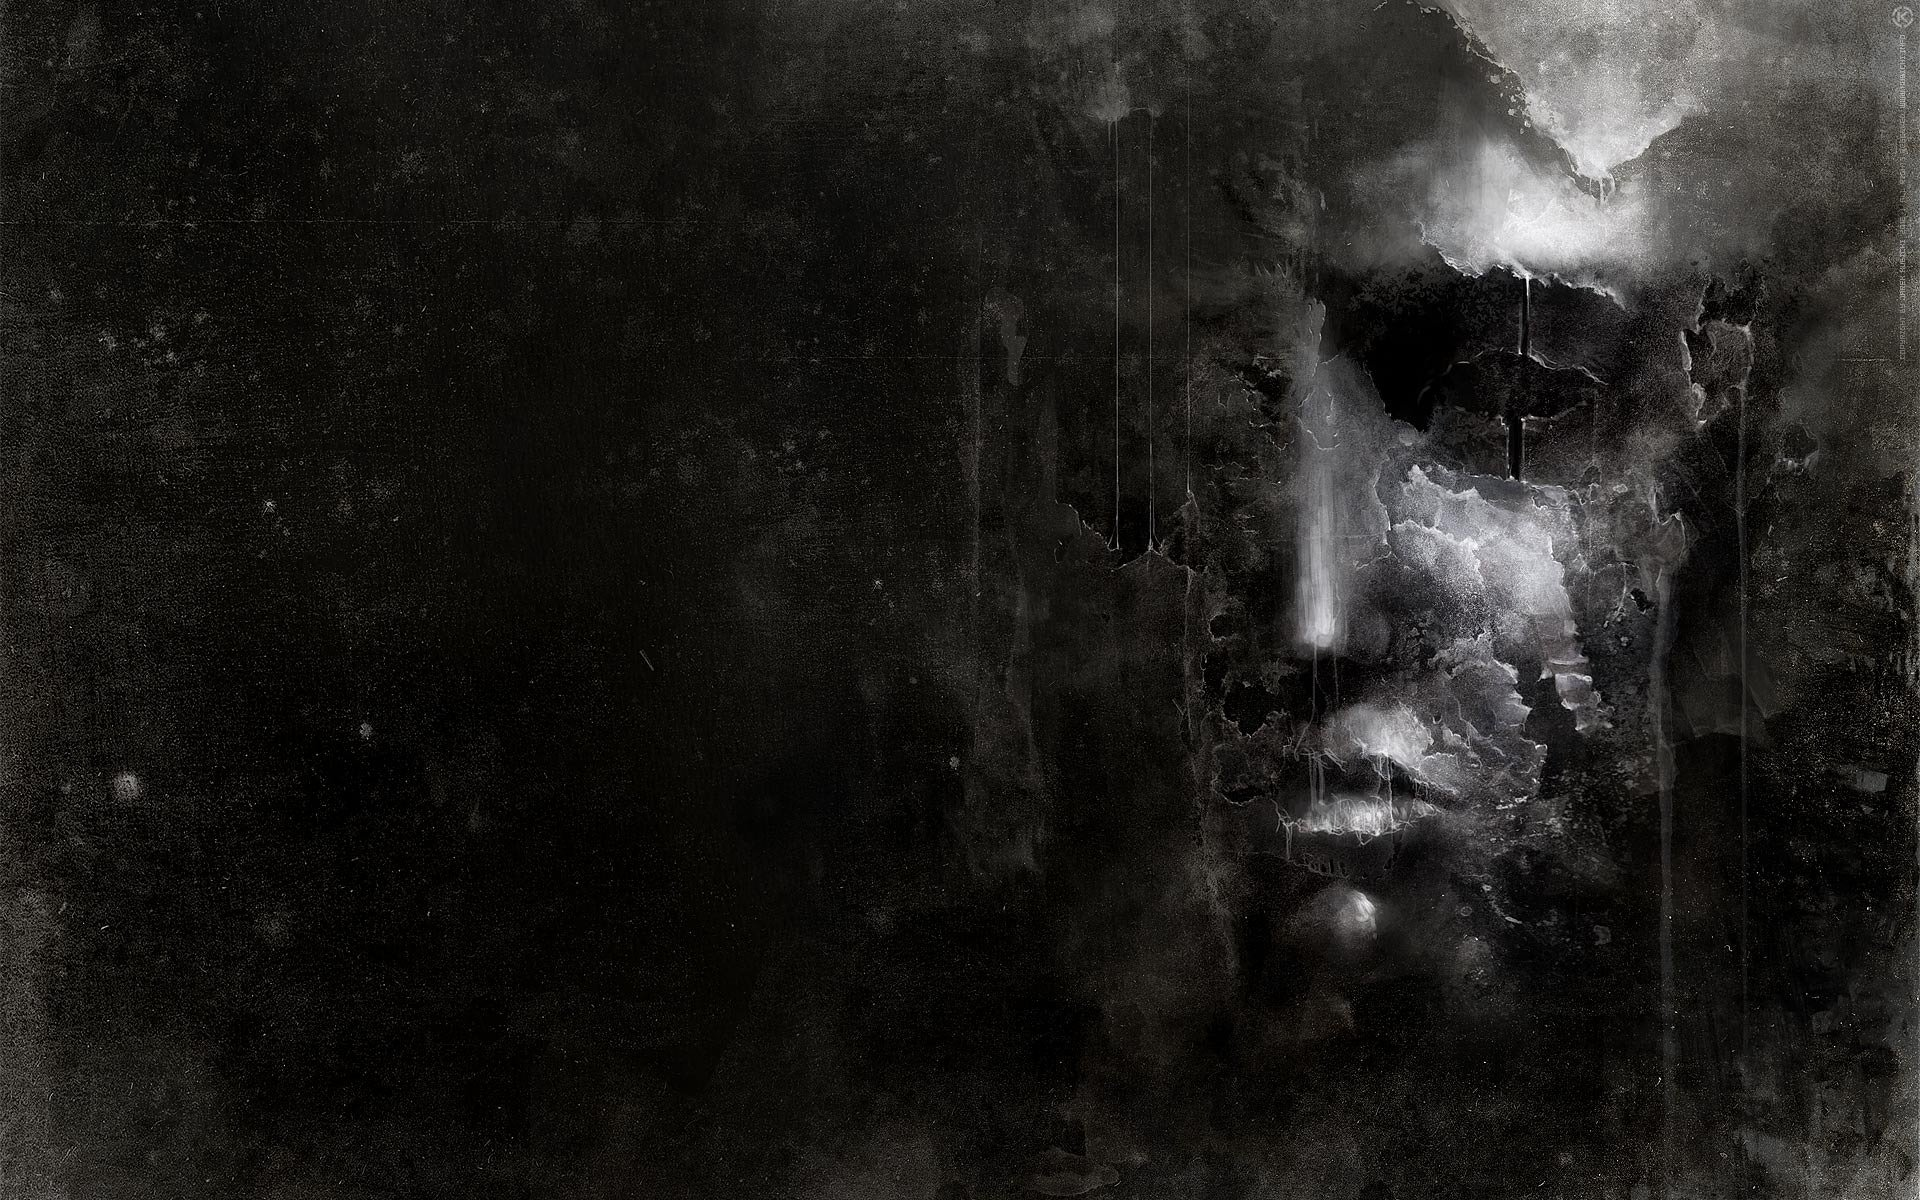 Drawings Sadness And Dark: Dark Face Sad Sorrow Gothic Wallpaper